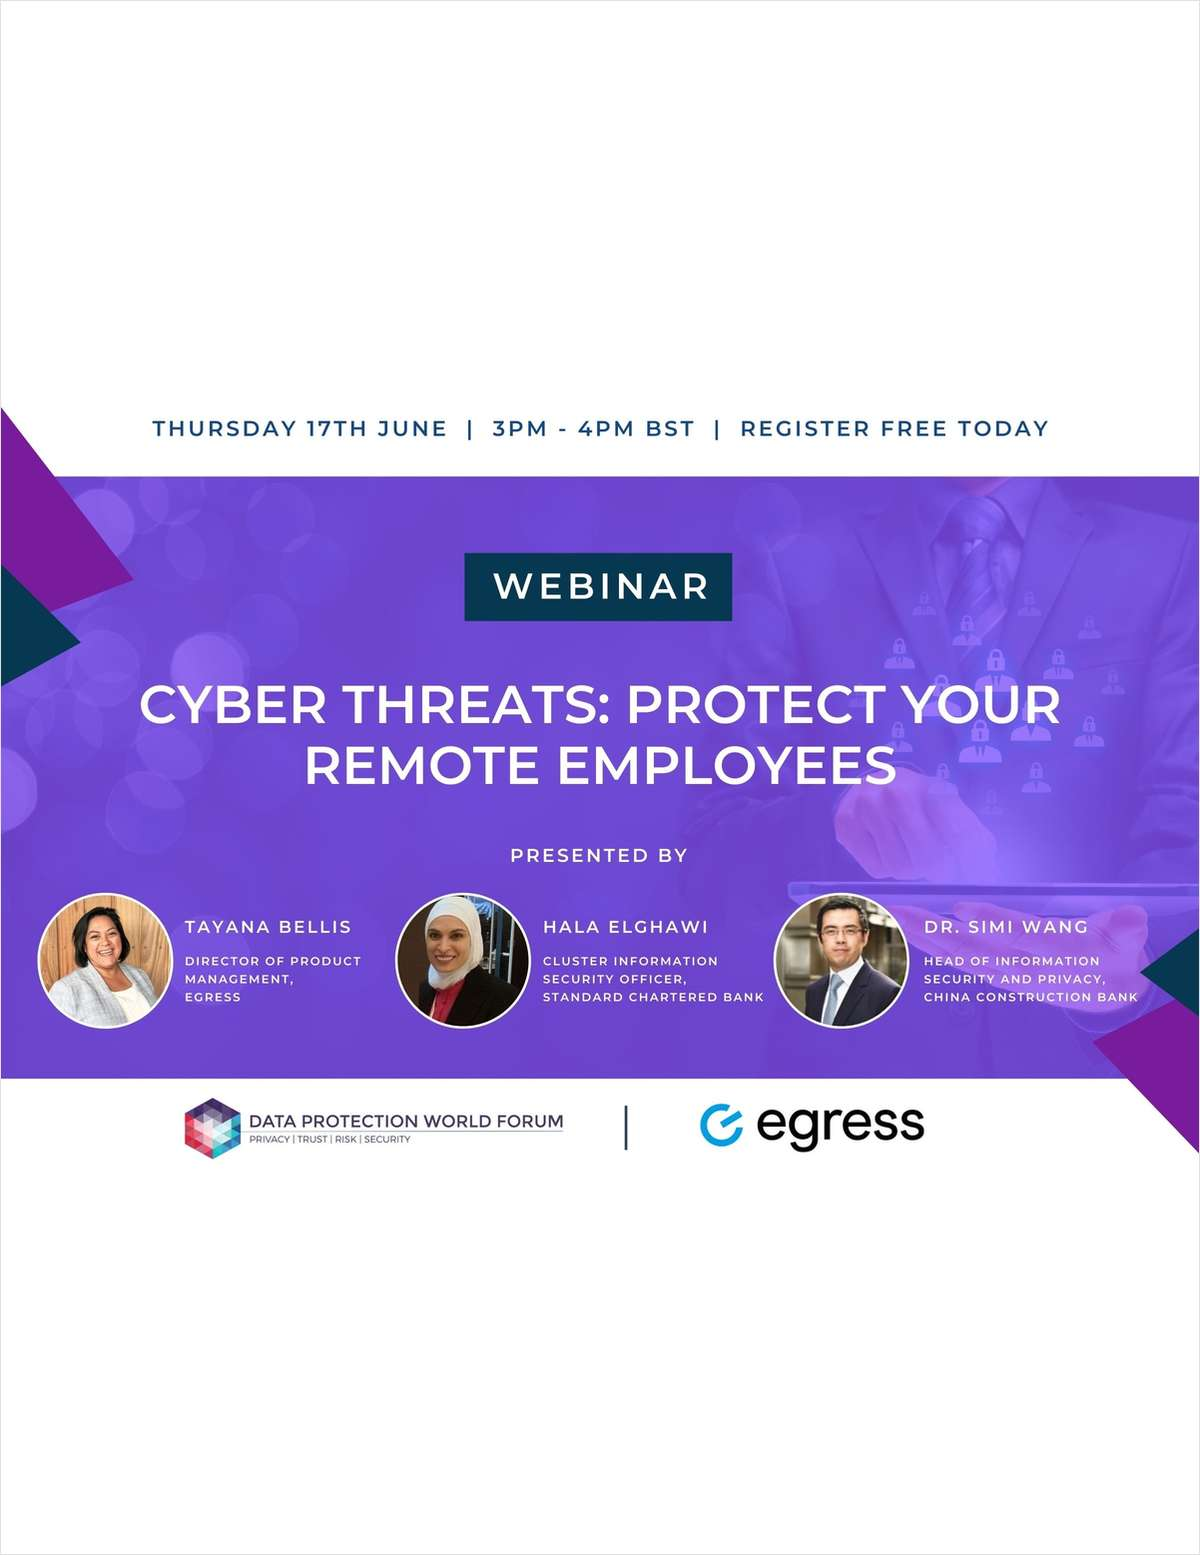 Webinar: Cyber Threats: Protect Your Remote Employees